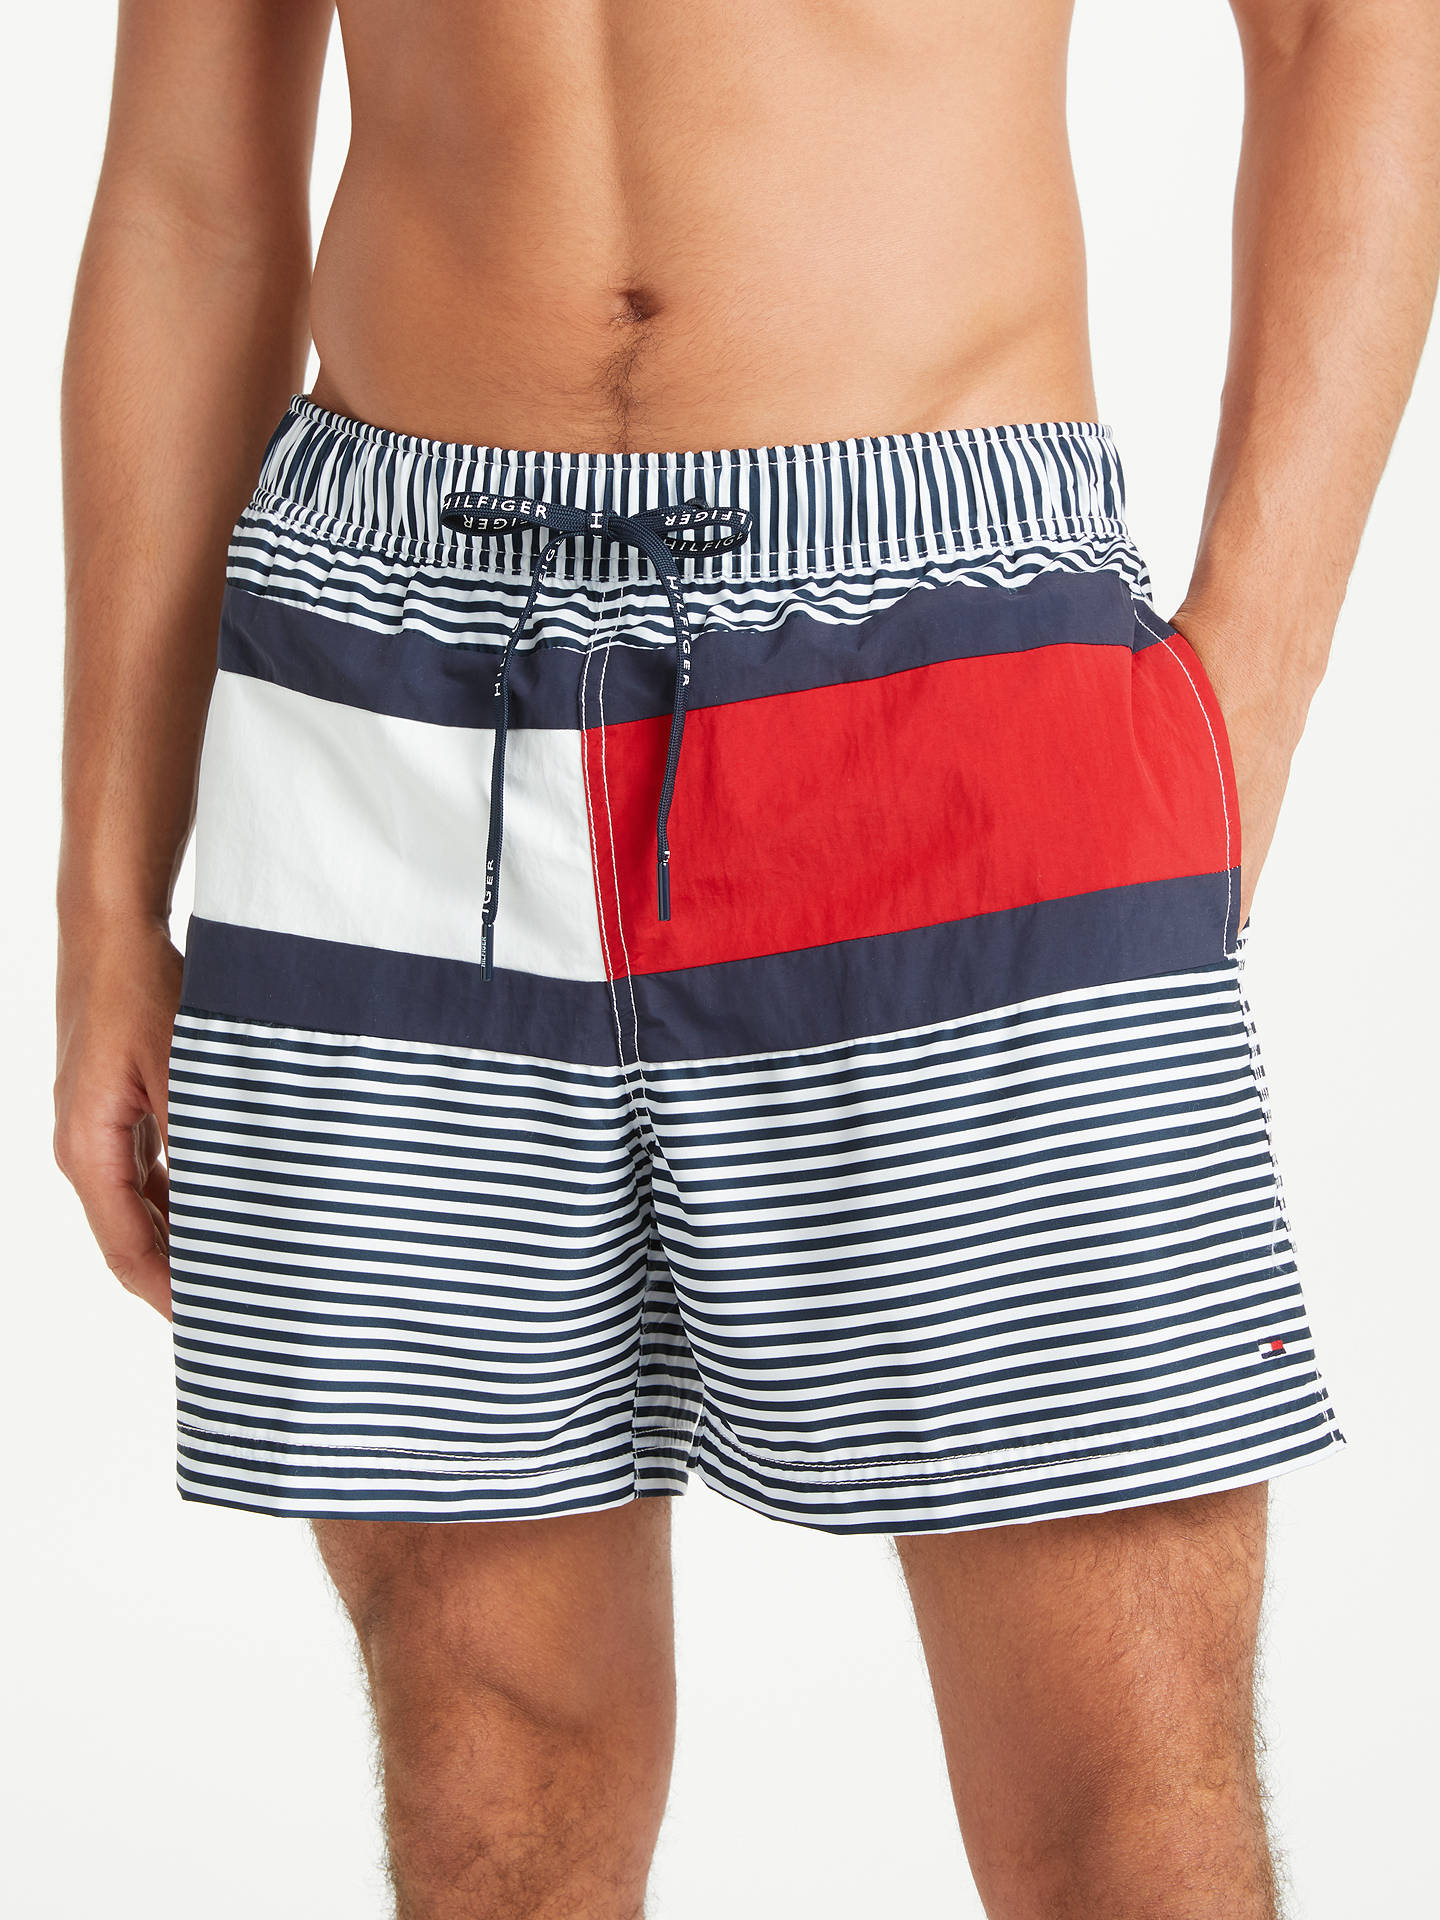 b54ef85901 Buy Tommy Hilfiger Stripe Flag Swim Shorts, Navy/White, XL Online at  johnlewis